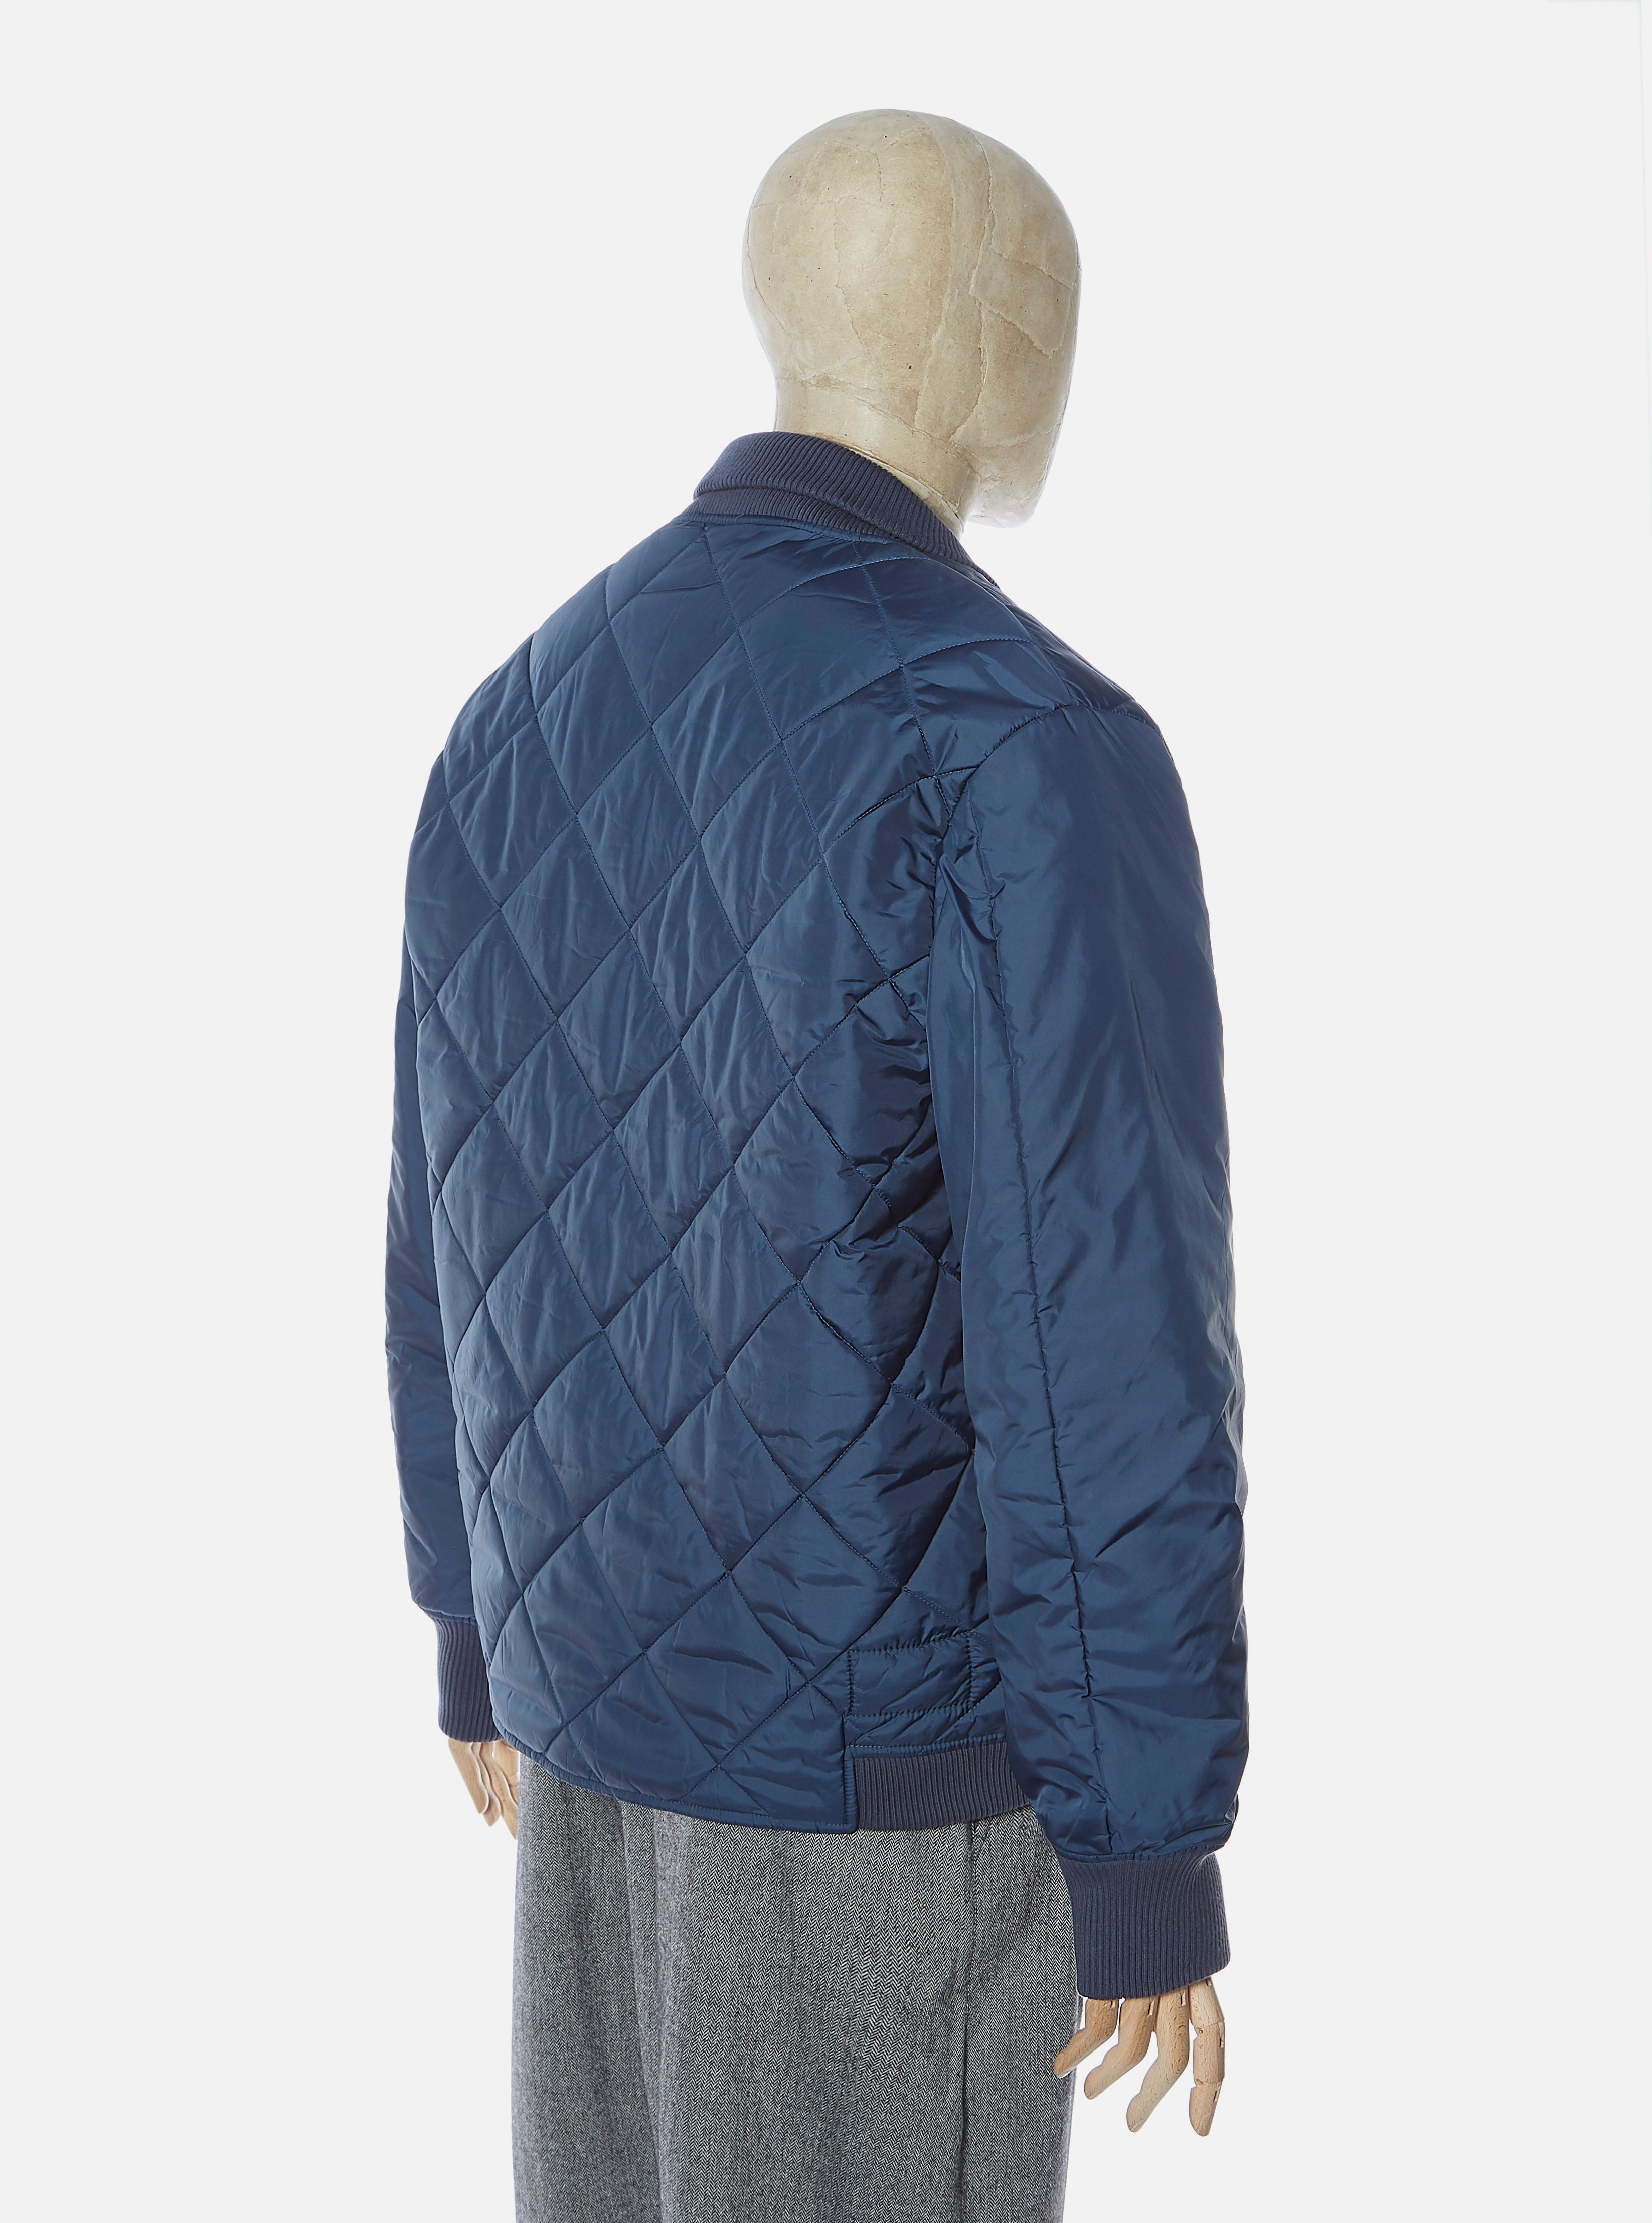 Universal Works Quilt Deck Jacket in Navy Italian WR Nylon